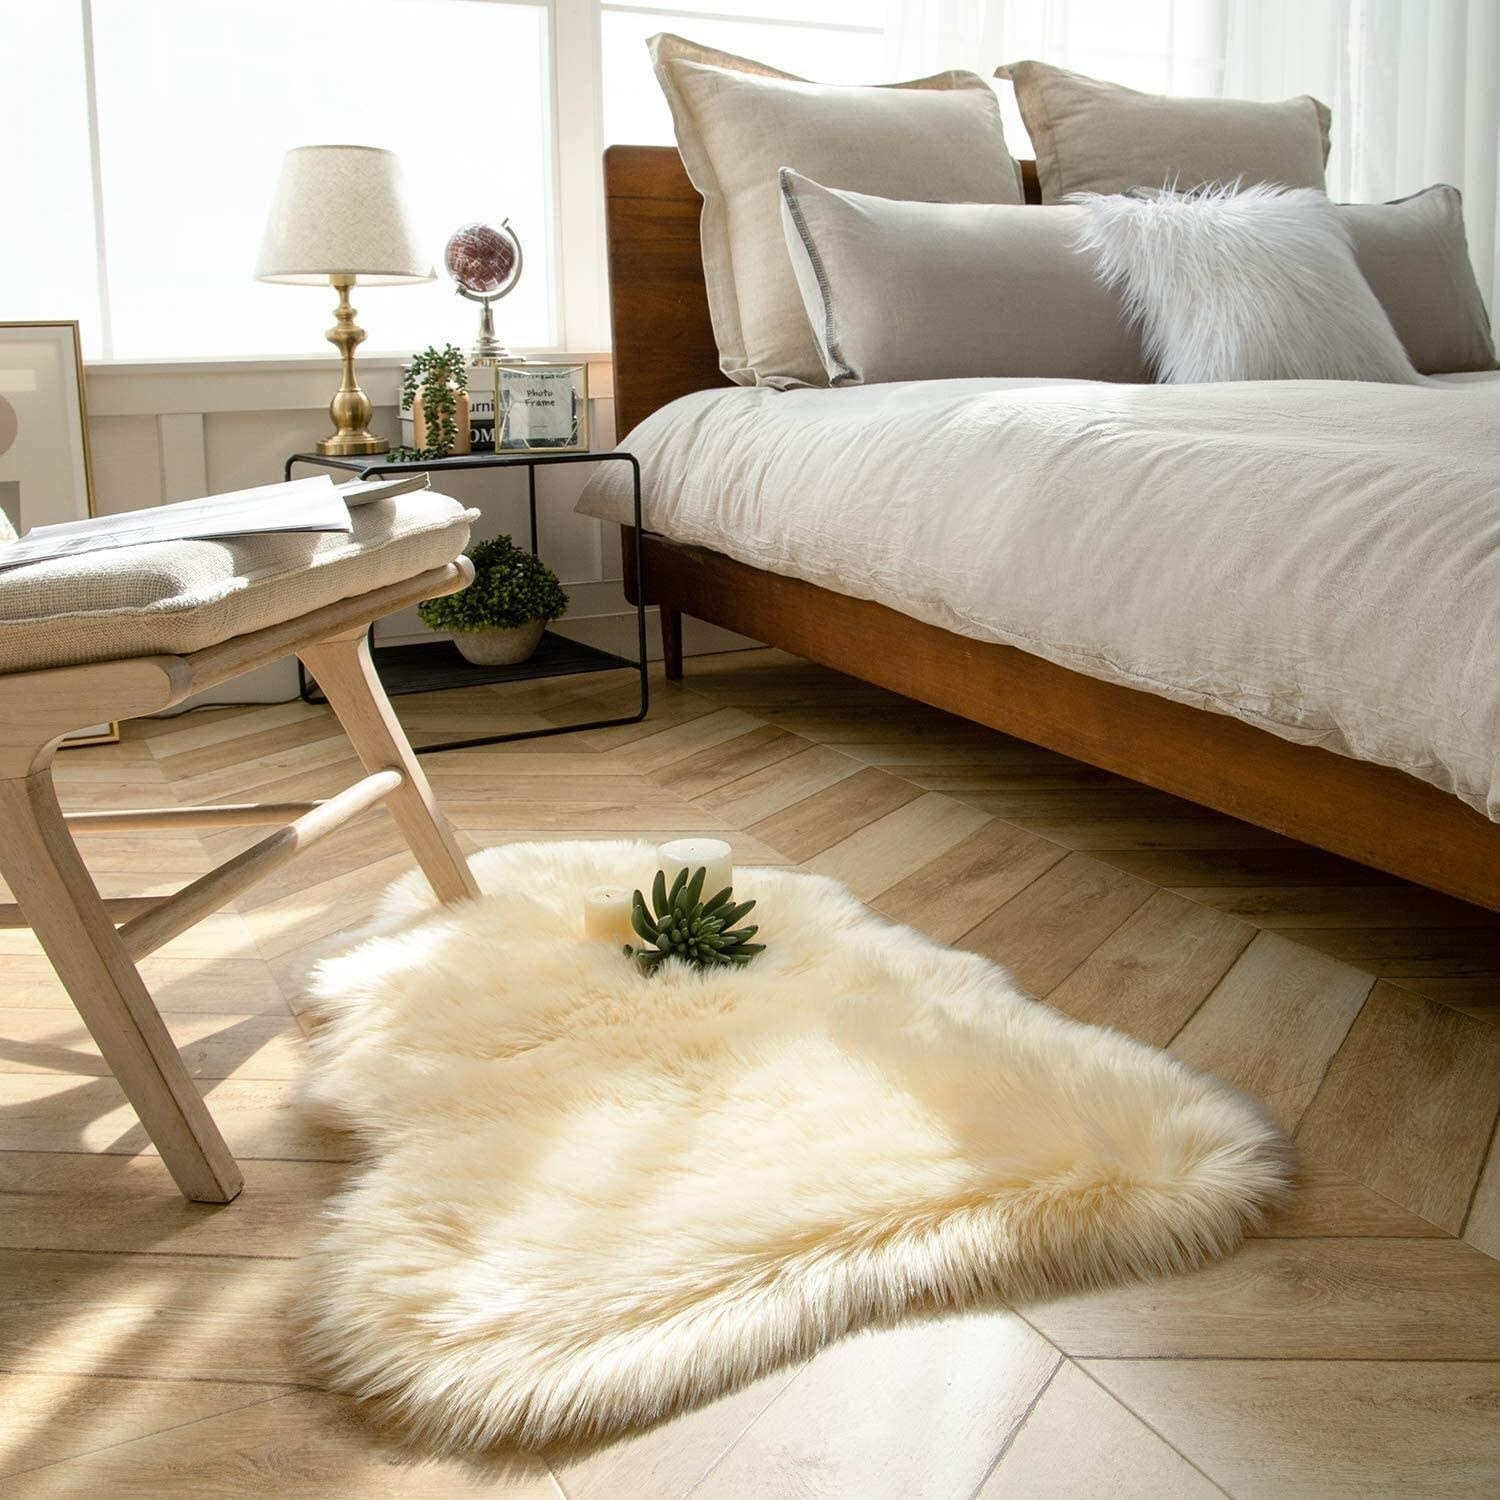 The rug beside a bed